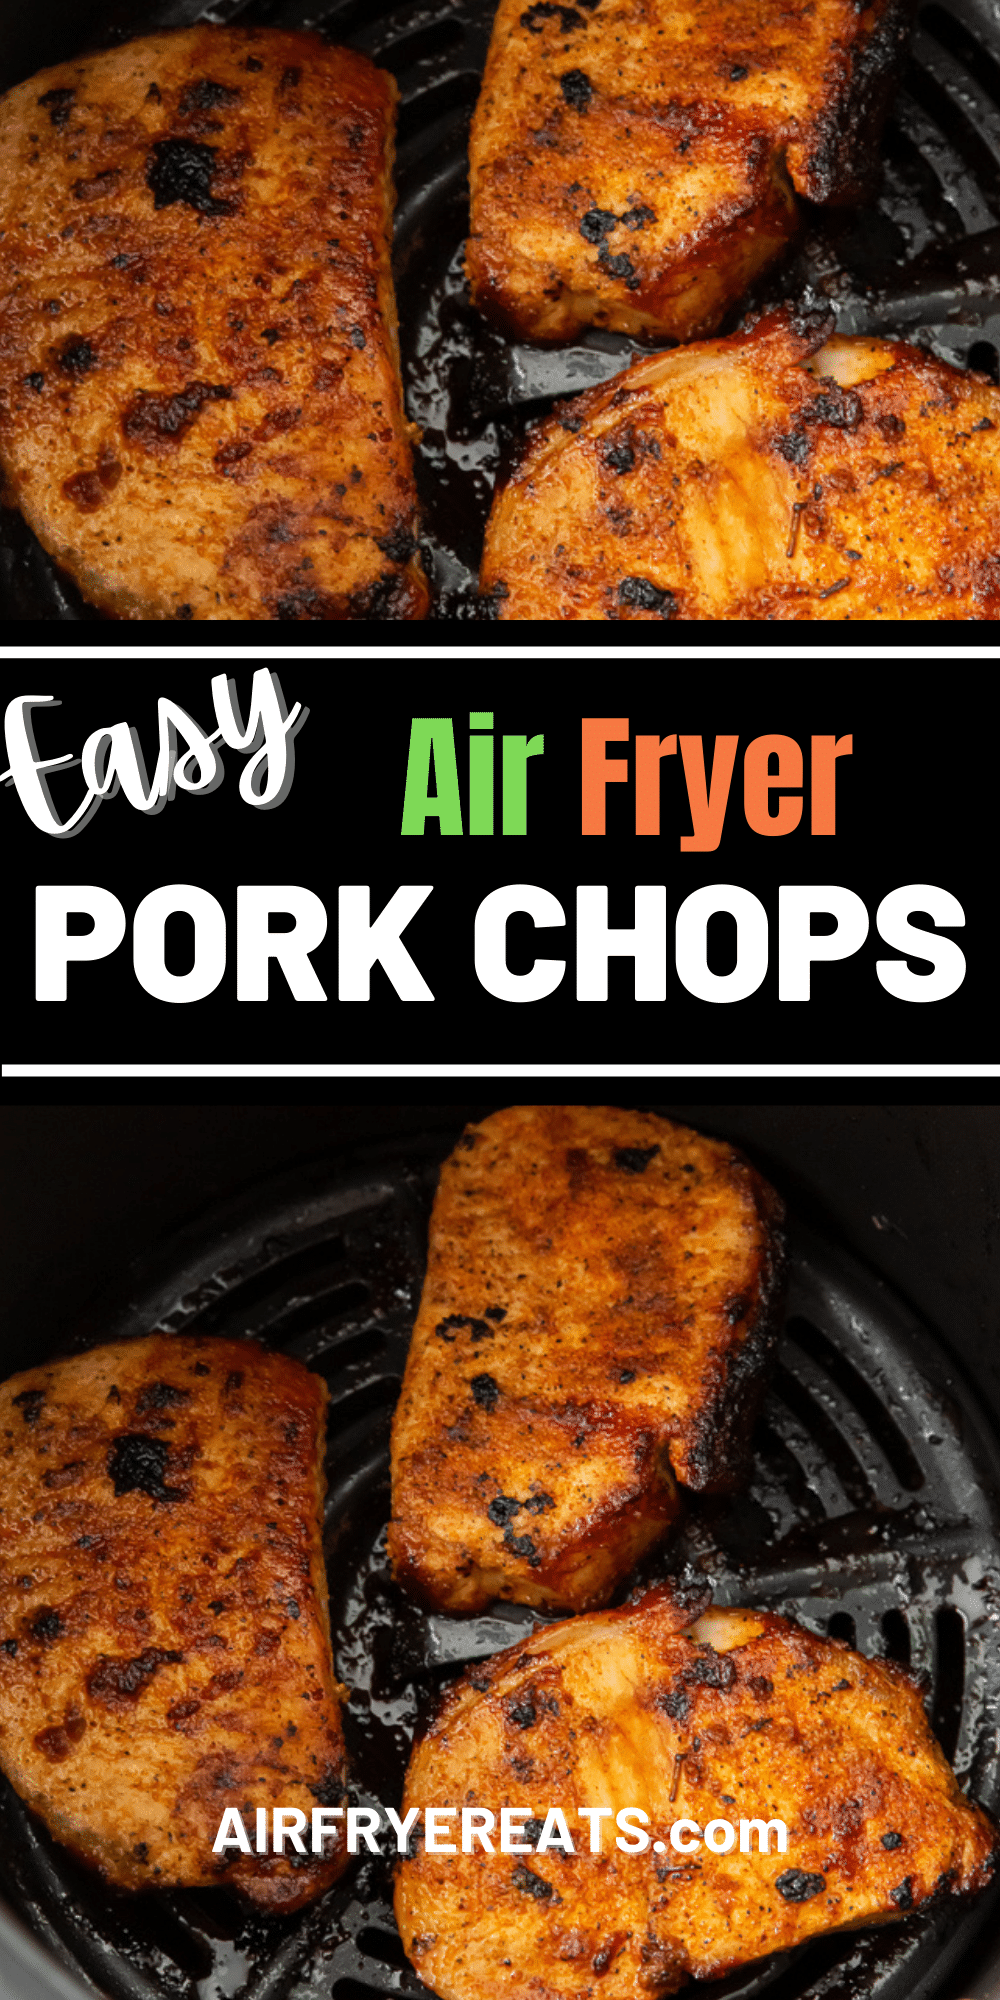 Air Fryer Pork chops - no breading needed to enjoy juicy, delicious pork chops in the air fryer! A simple seasoning blend gives these air fryer pork chops great flavor, and they're ready in less than 10 minutes. #porkchops @airfryerpork via @vegetarianmamma